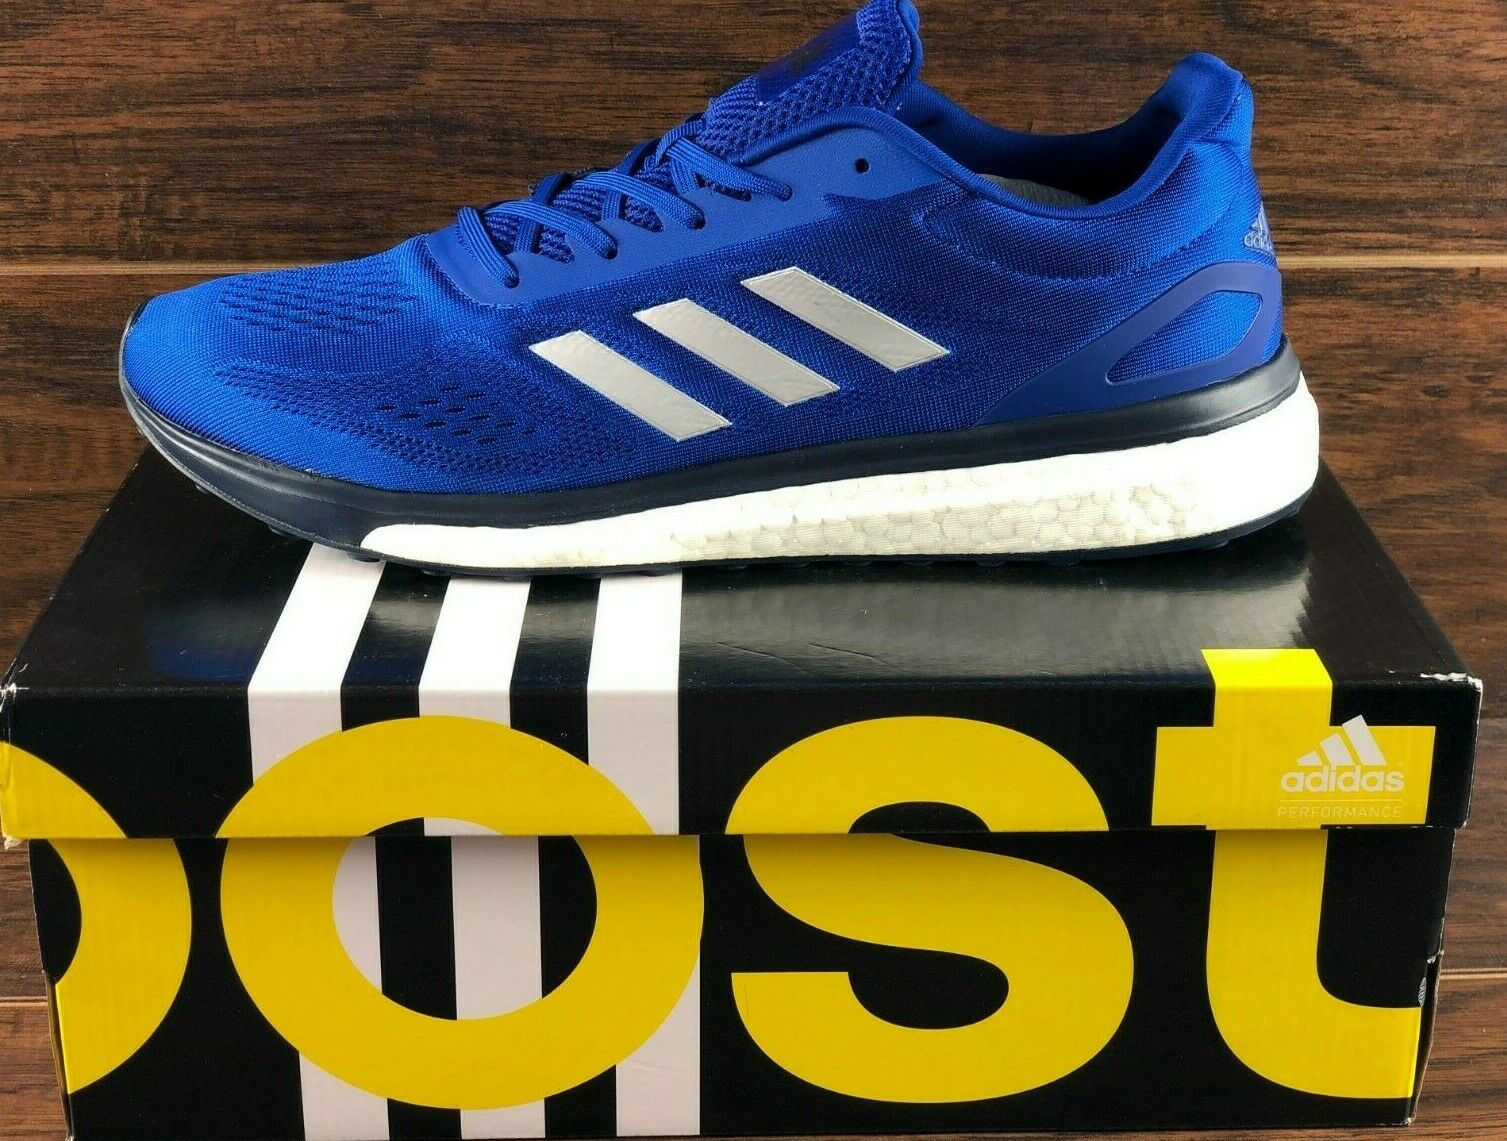 ADIDAS SONIC DRIVE M PERFORMANCE BOOST RUNNING SHOES blueE WHITE